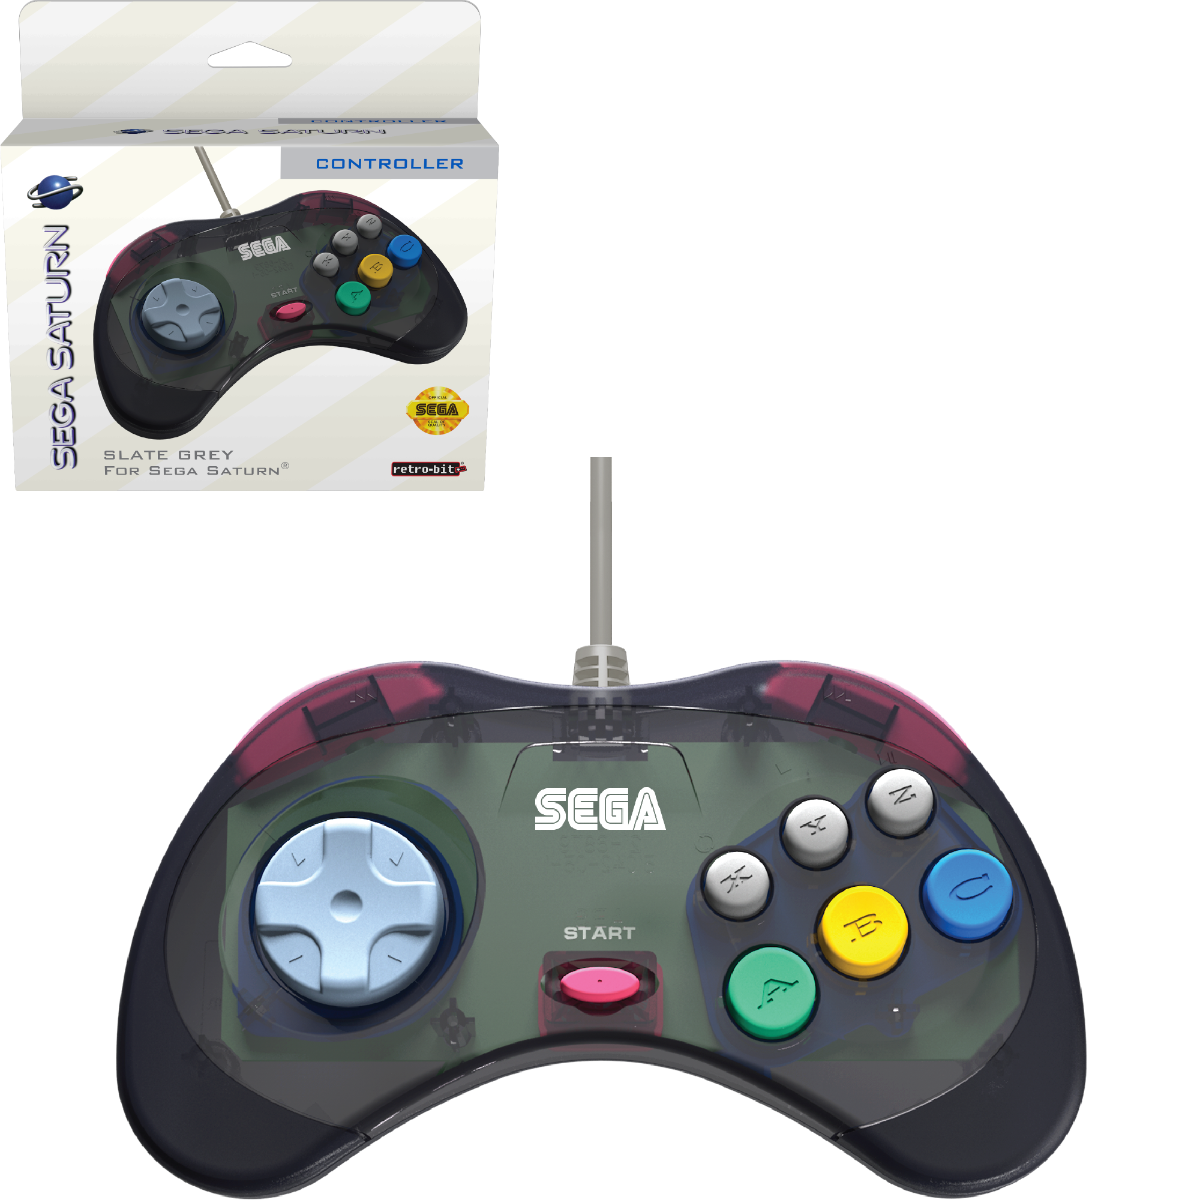 SEGA, Saturn, Arcade Pad, 8 Button, Slate Grey, USB